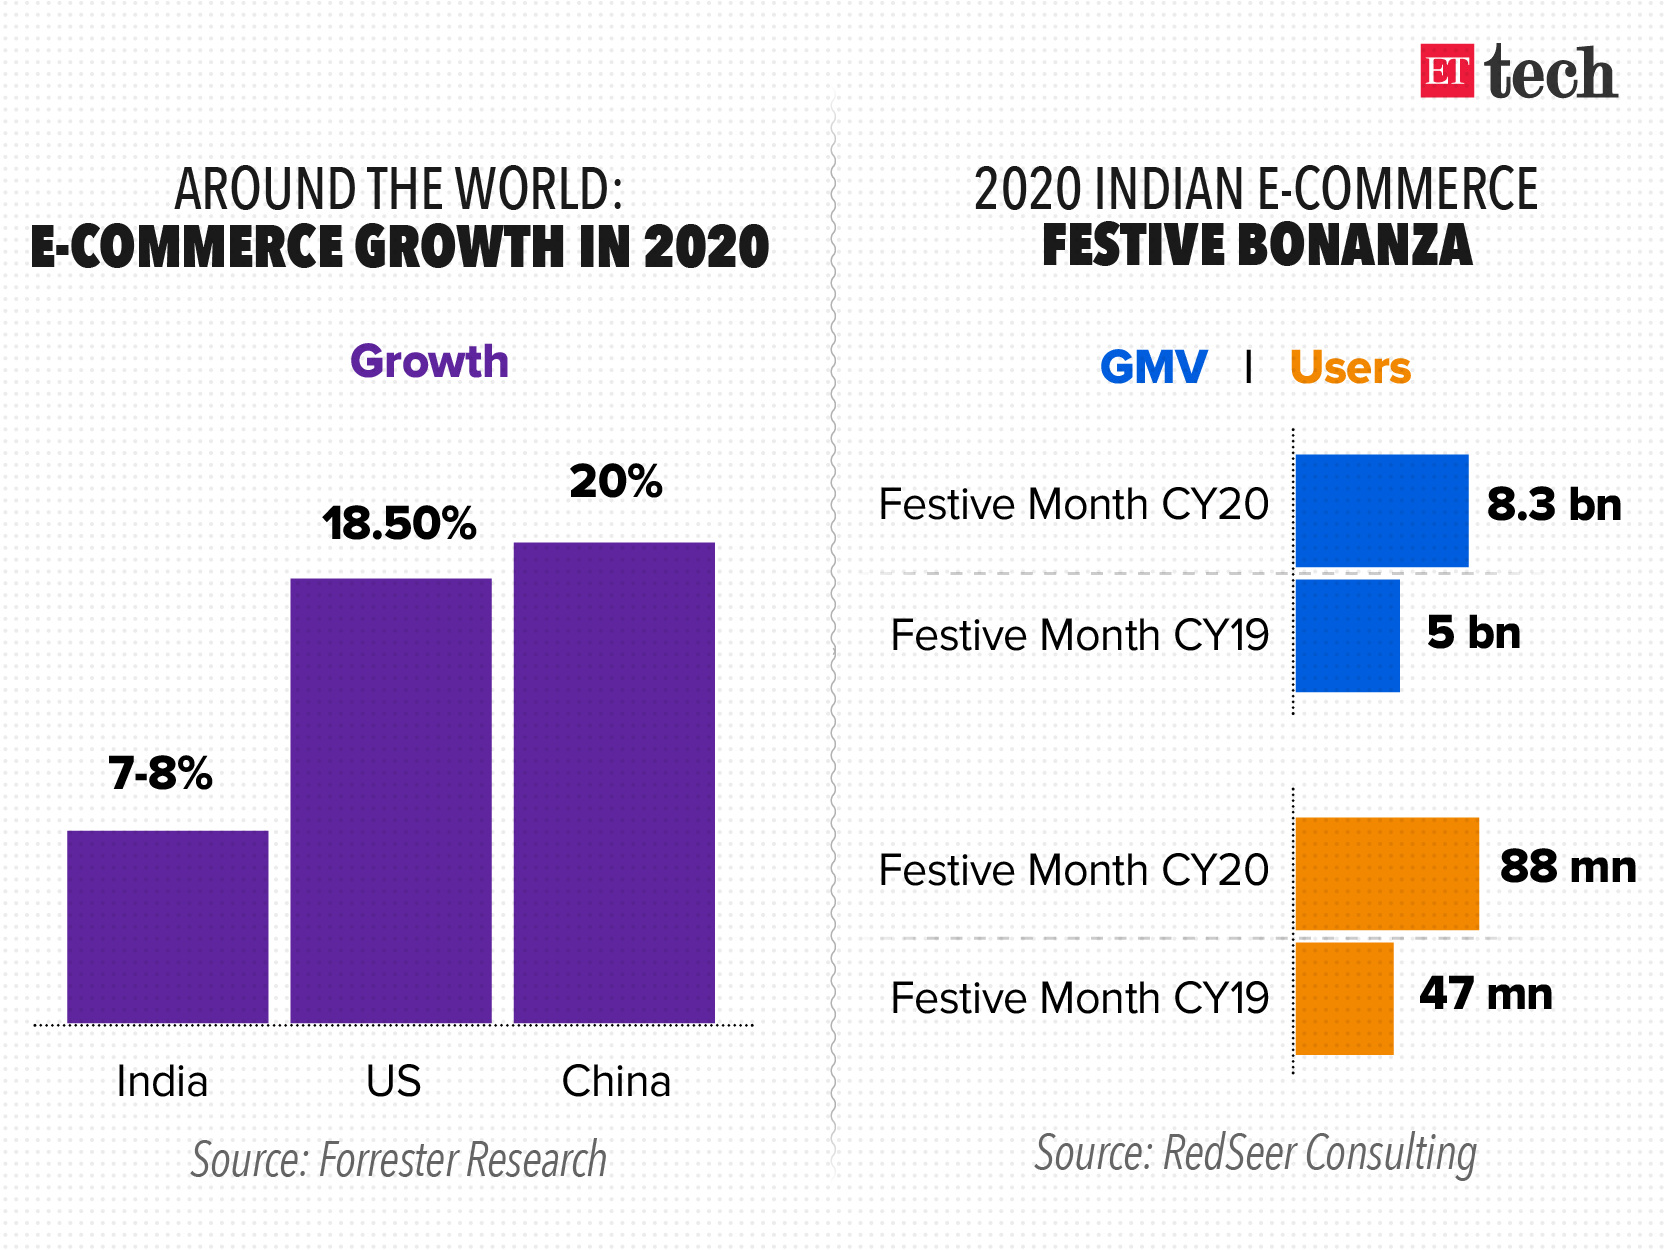 around-the-world-e-commerce-growth-in-2020